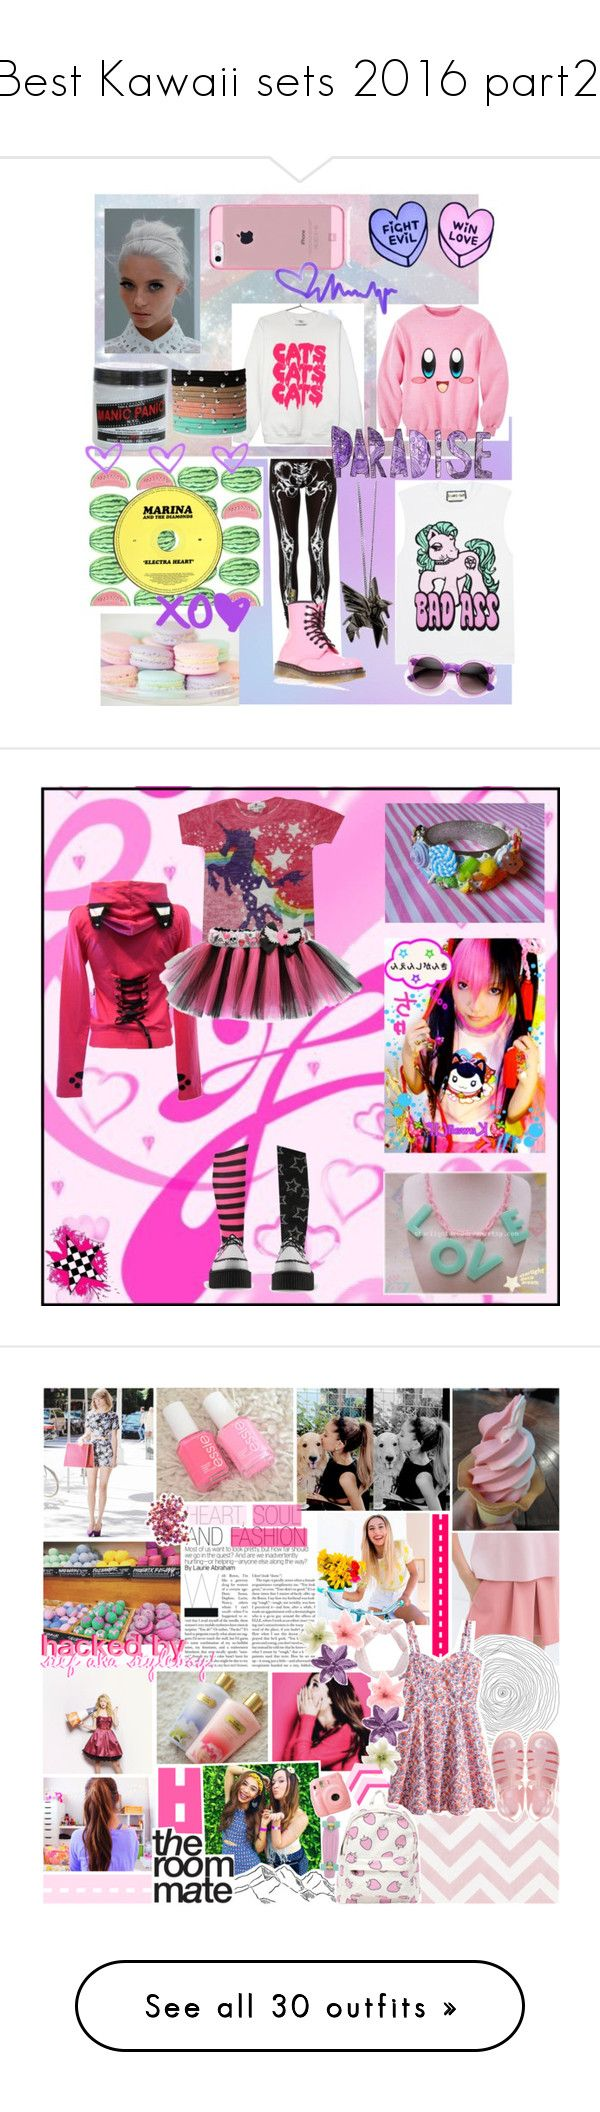 """""""Best Kawaii sets 2016 part2."""" by rockergirl-861 ❤ liked on Polyvore featuring See You Monday, Dr. Martens, Origami Jewellery, My Little Pony, Manic Panic NYC, Forever 21, T.U.K., pink, japanese and decora"""